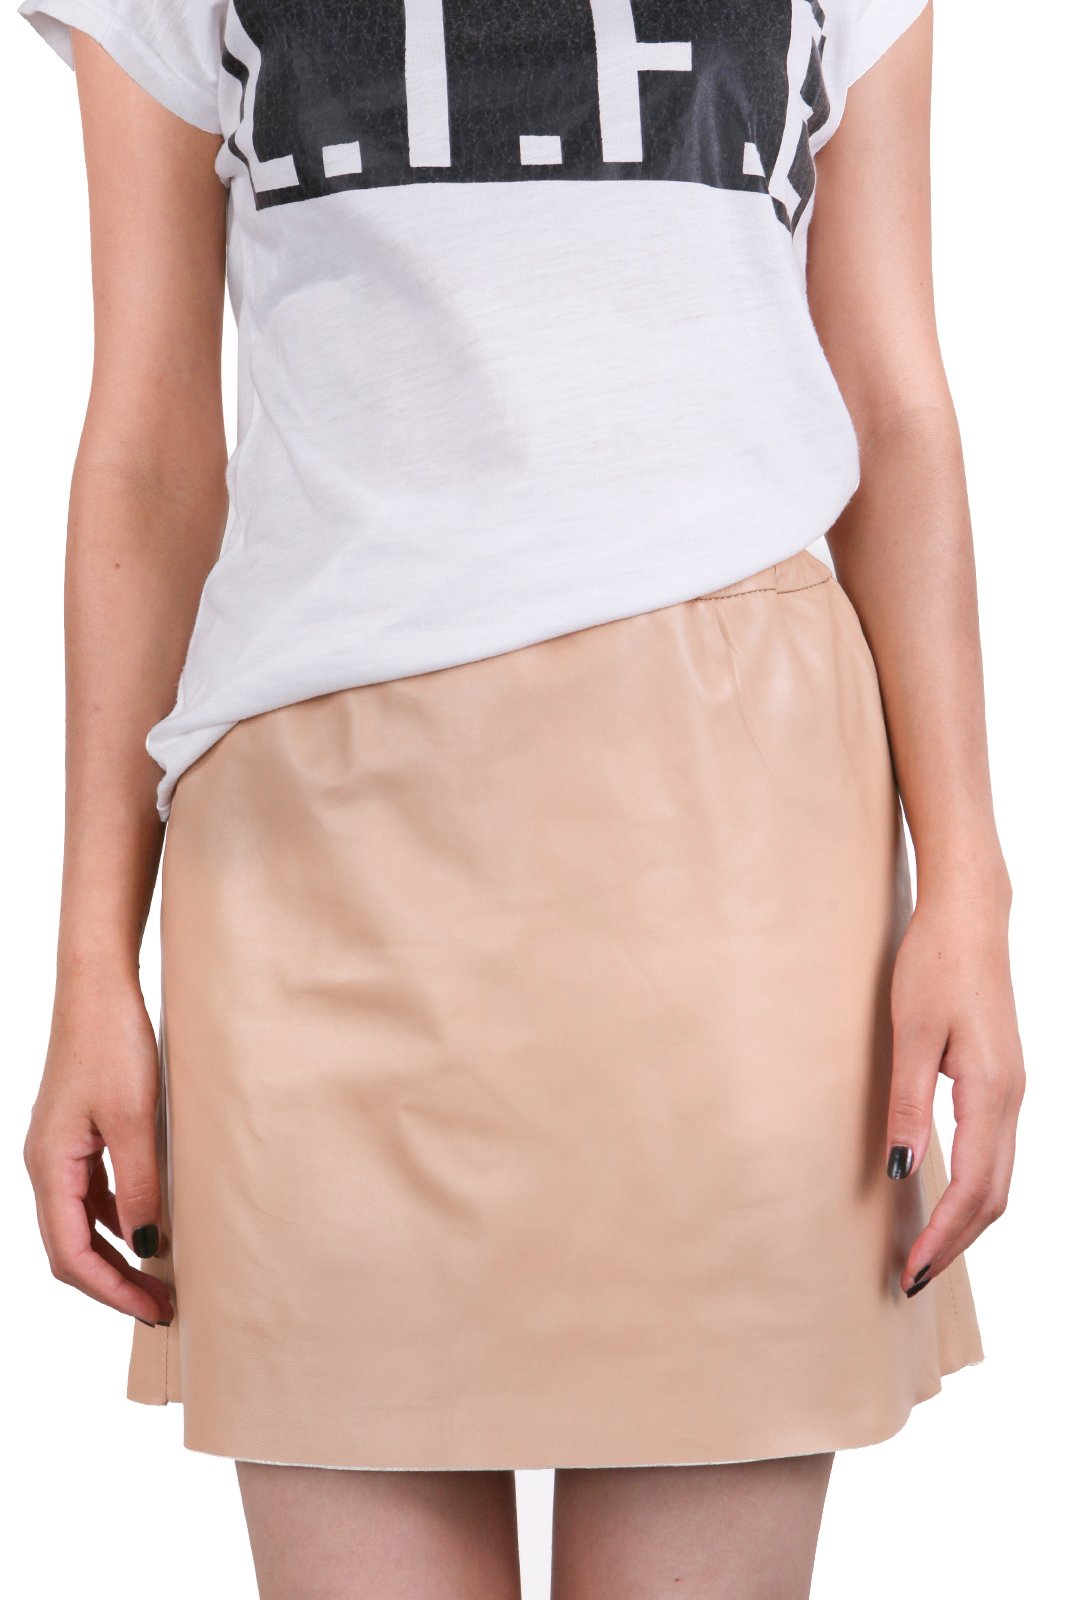 IPAW1001 Beige Leather Skirt